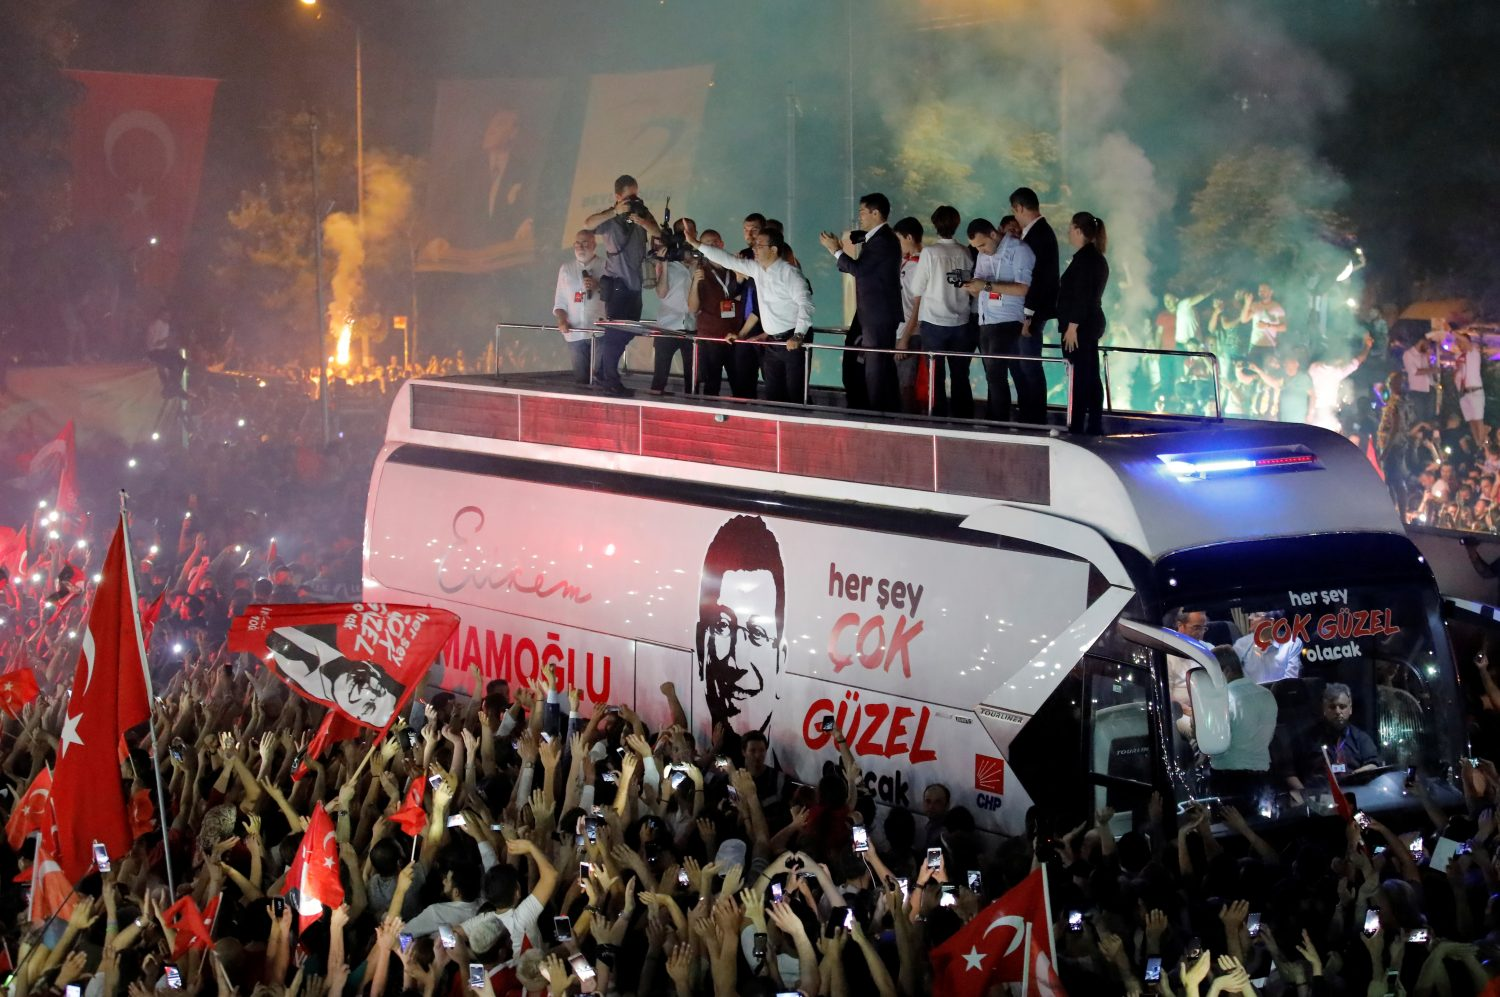 Ekrem Imamoglu, mayoral candidate of the main opposition Republican People's Party (CHP), greets supporters at a rally of in Beylikduzu district, in Istanbul, Turkey, June 23, 2019. REUTERS/Kemal Aslan